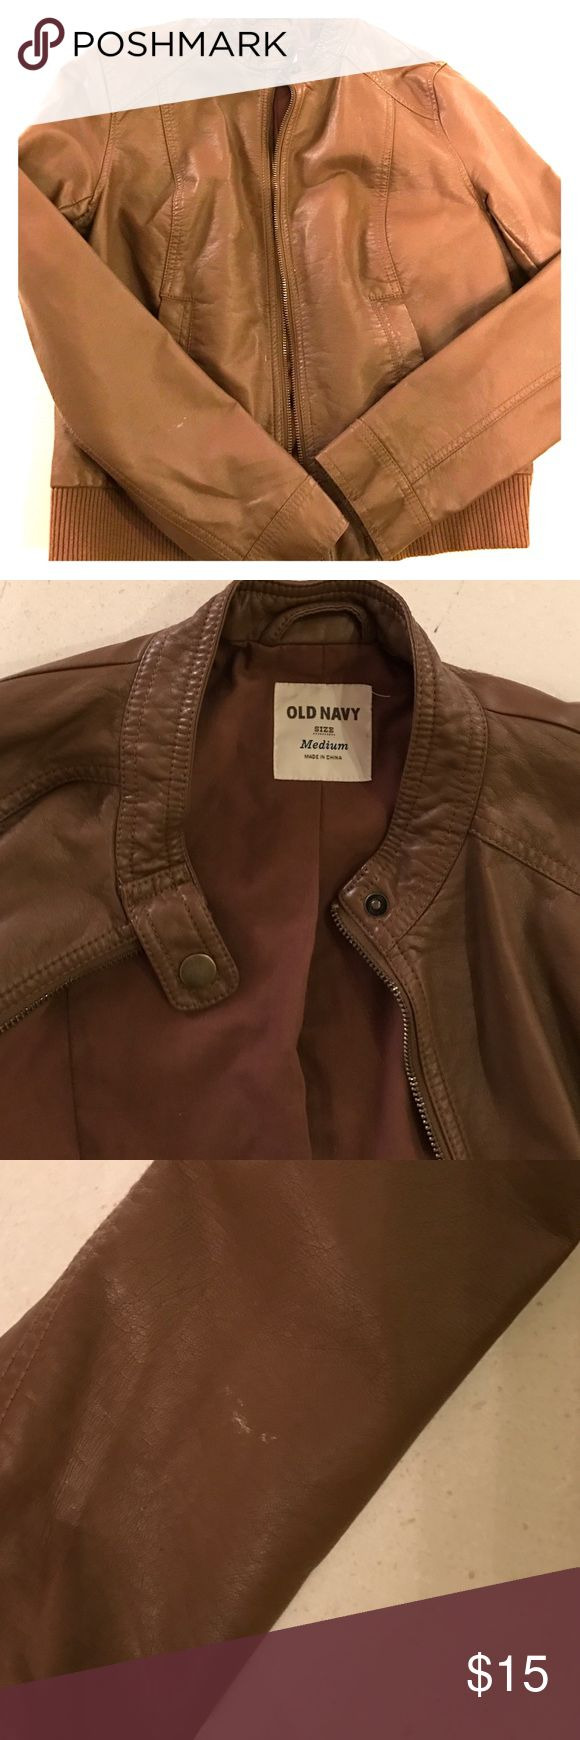 Women's Faux brown leather coat Faux leather brown bomber jacket. Has front pockets. Zippers in front and can be buttoned at the neck line. Old Navy Jackets & Coats Utility Jackets